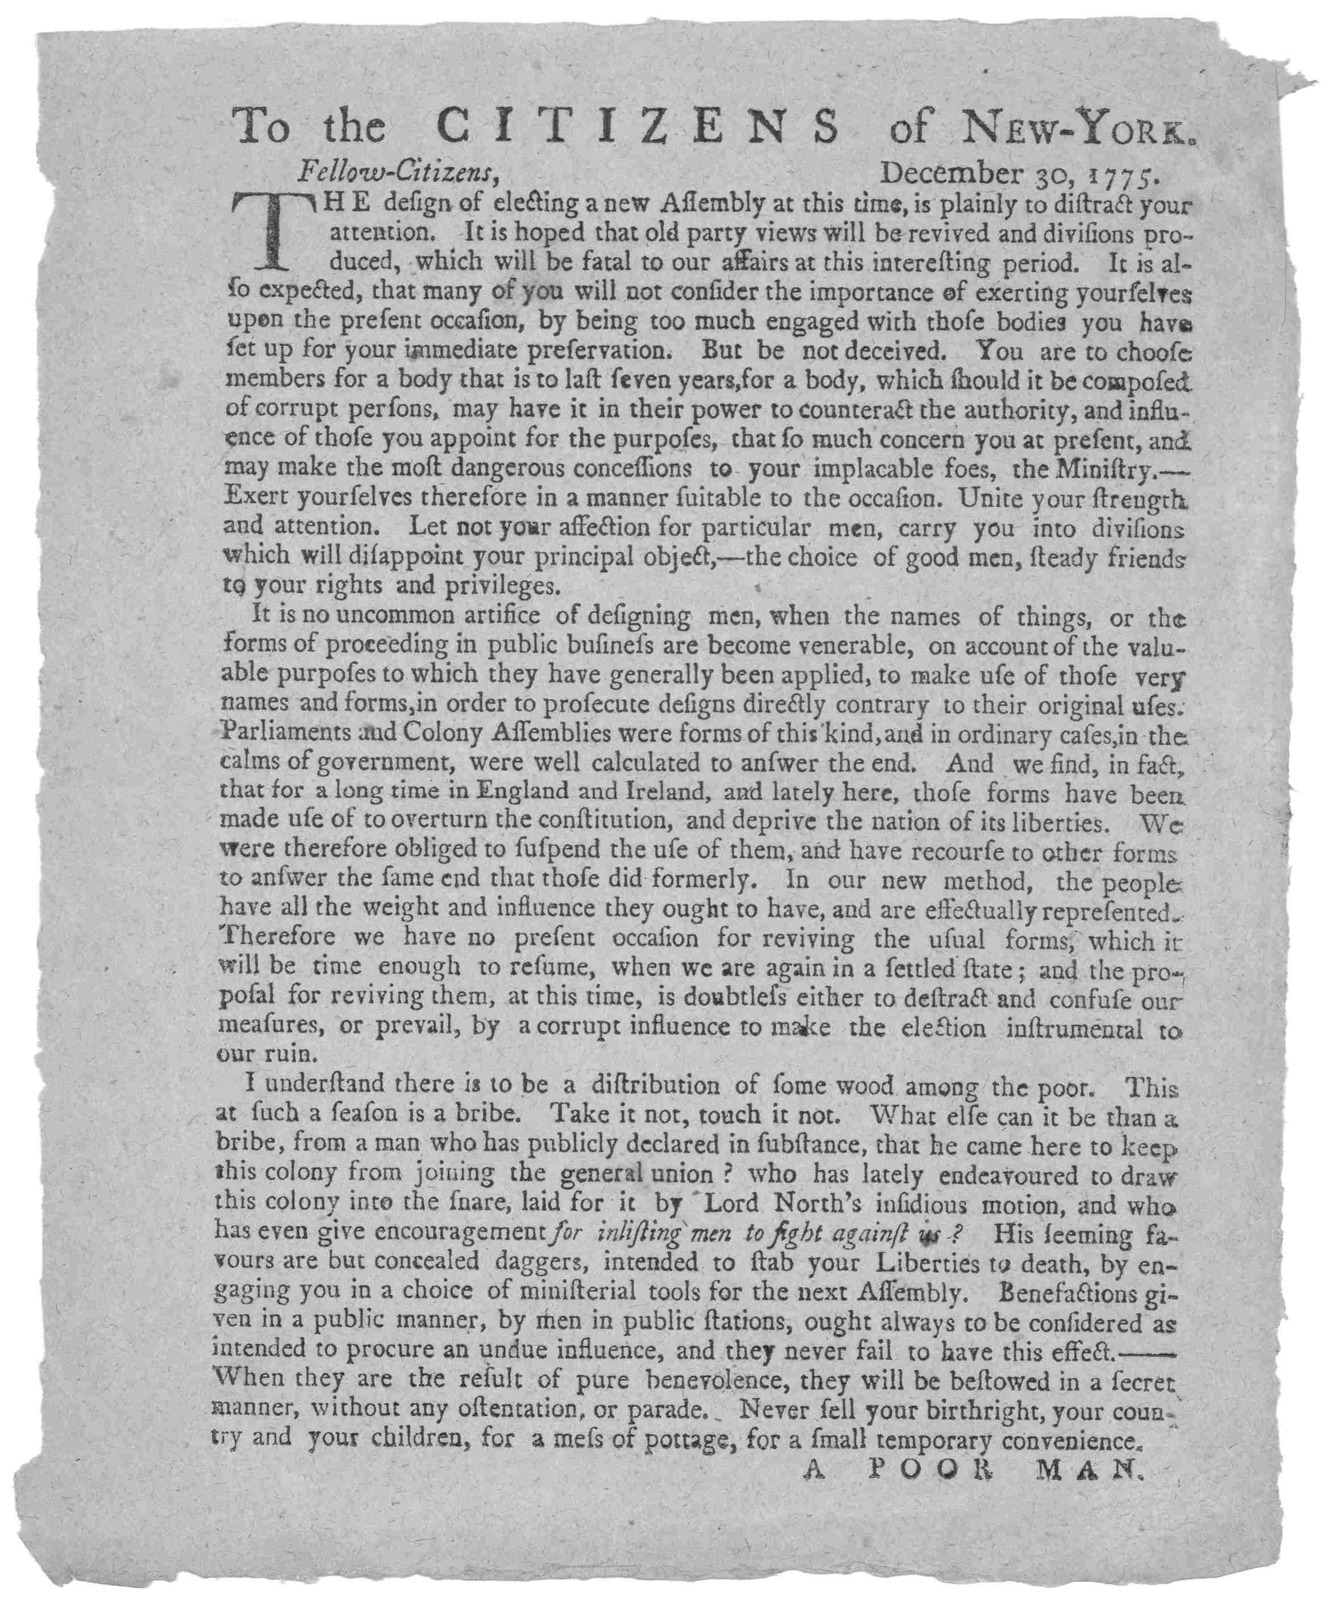 To the citizens of New-York. December 30, 1775. Fellow-Citizens. The design of electing a new Assembly at this time, is plainly to distract your attention ... [Signed] A poor Man. [blank] [New York, 1775].